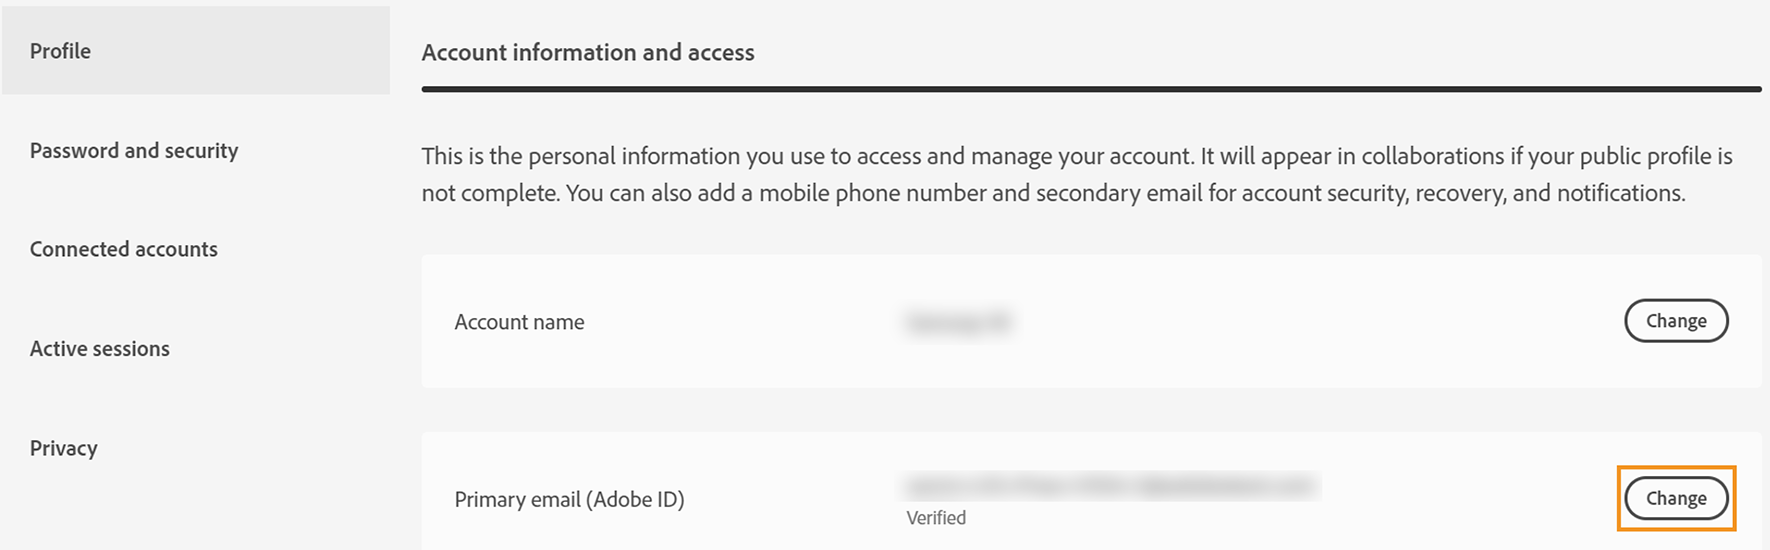 "Click ""Change"" next to Primary email (Adobe ID)"